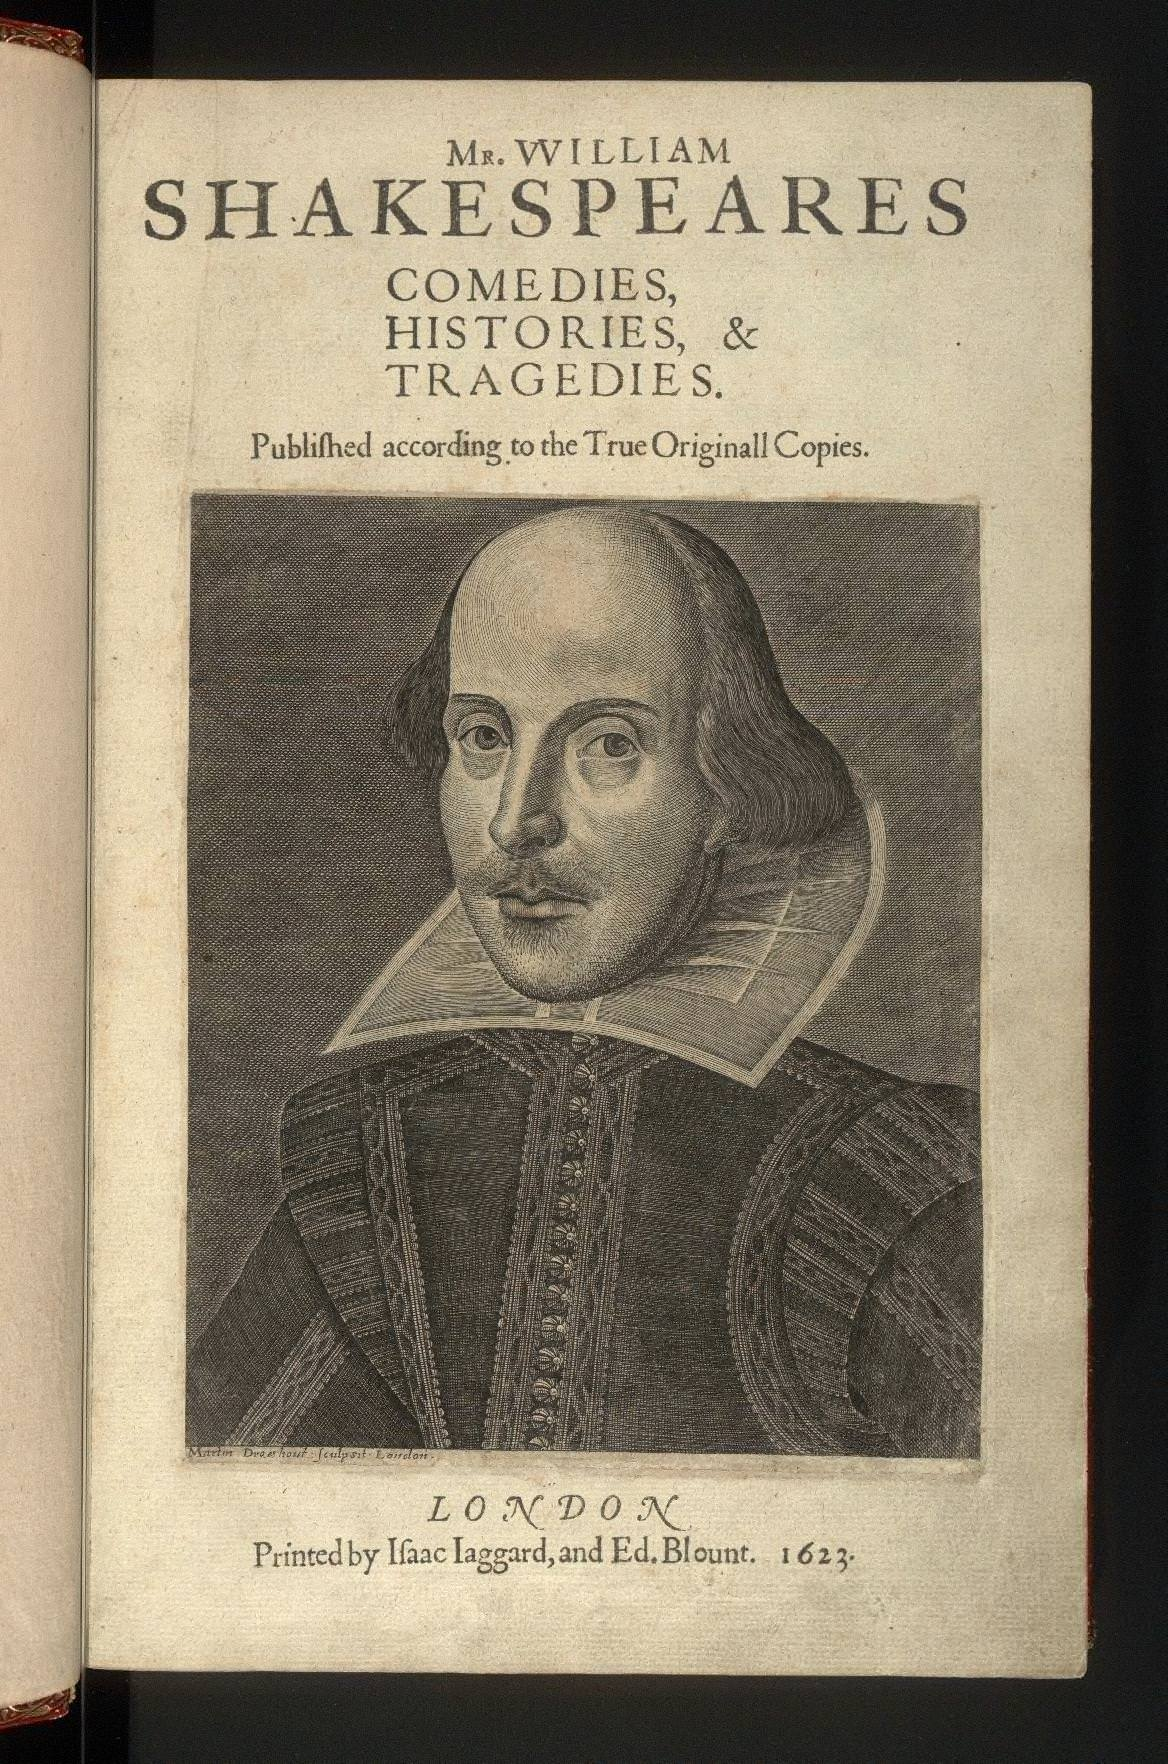 A copy of the First Folio,  published 7 years after Shakespeare's death  by two actor friends. Without this collection, eighteen plays would have been lost, incl. Macbeth, Julius Caesar and Romeo & Juliet